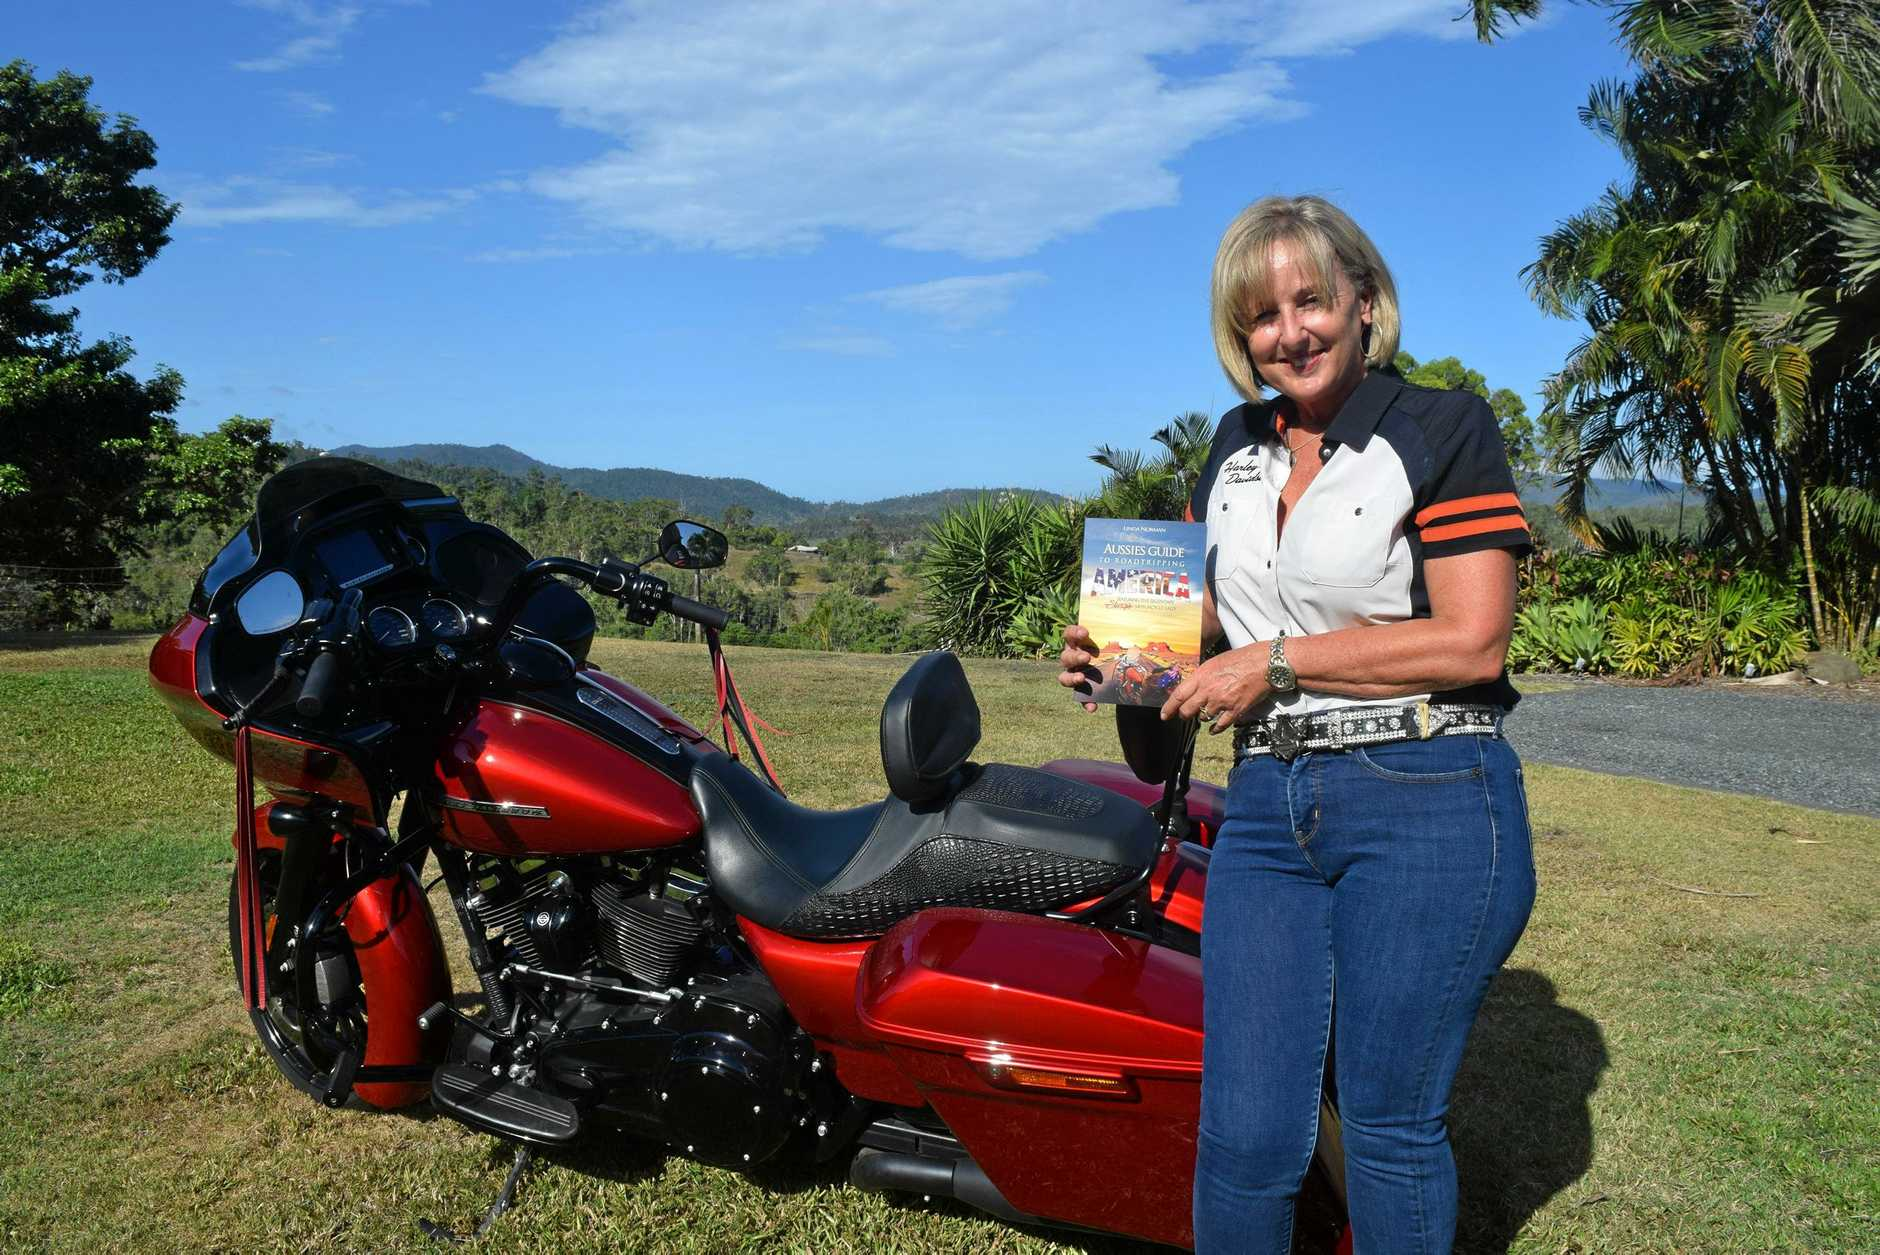 Aussies Guide to Roadtripping America has been a four year labour of love for Strathdickie woman Linda Norman.